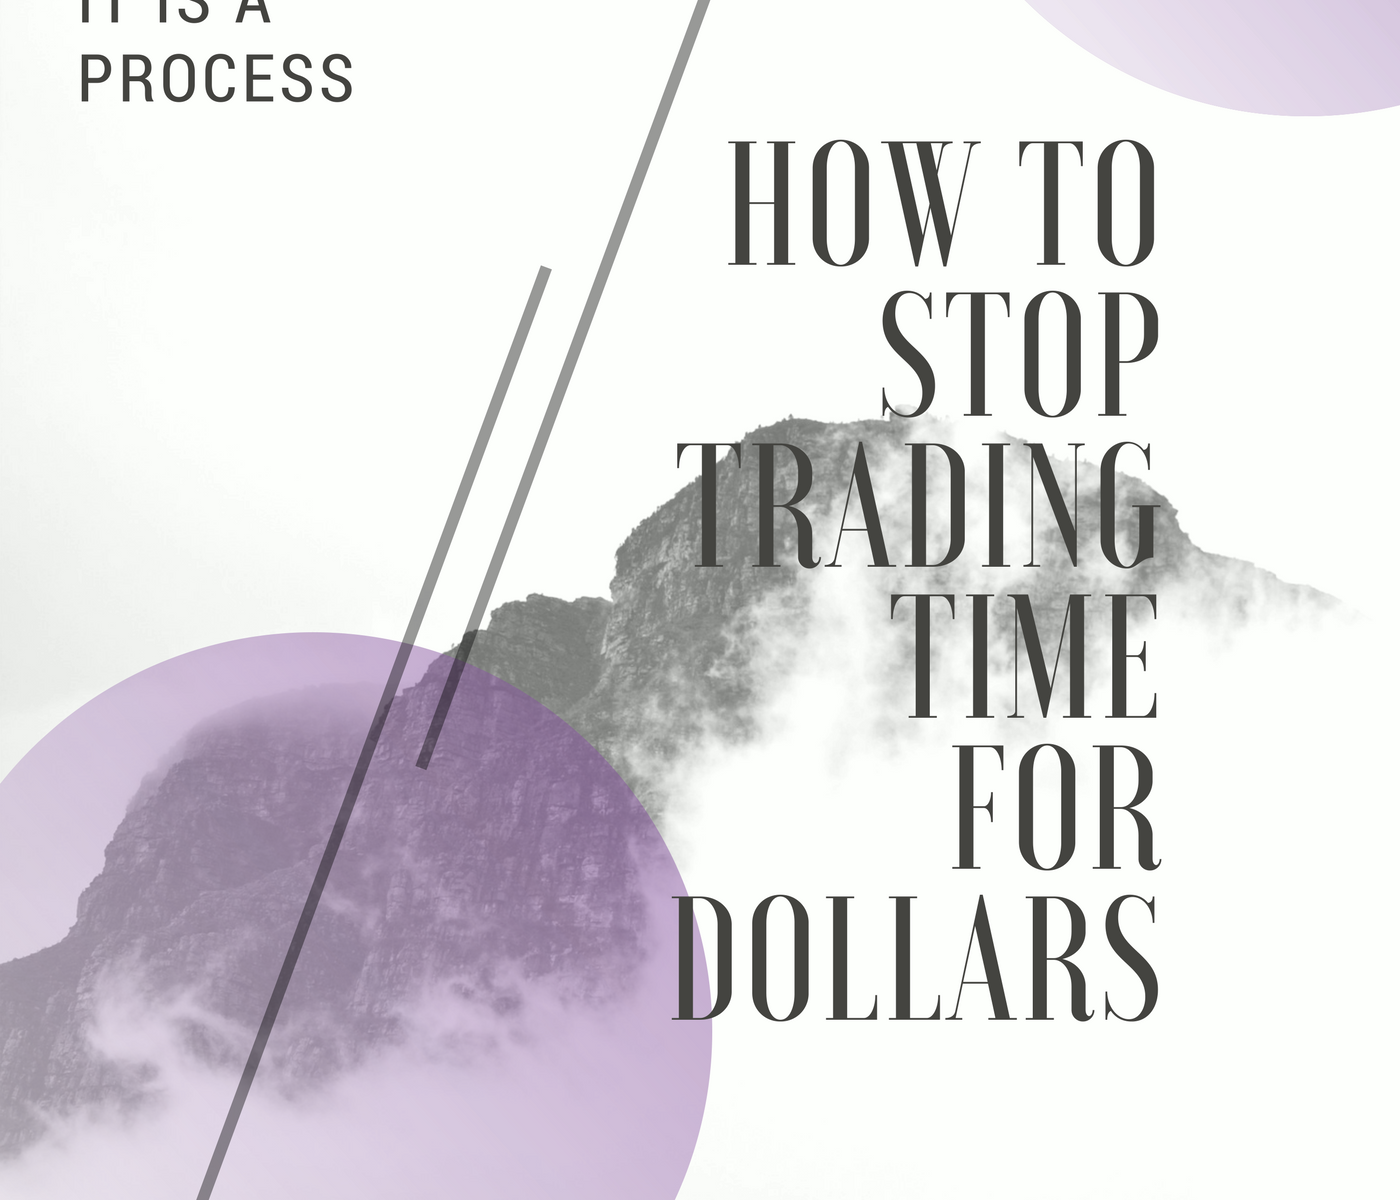 How to Stop Trading Time for Dollars - It Is a Process